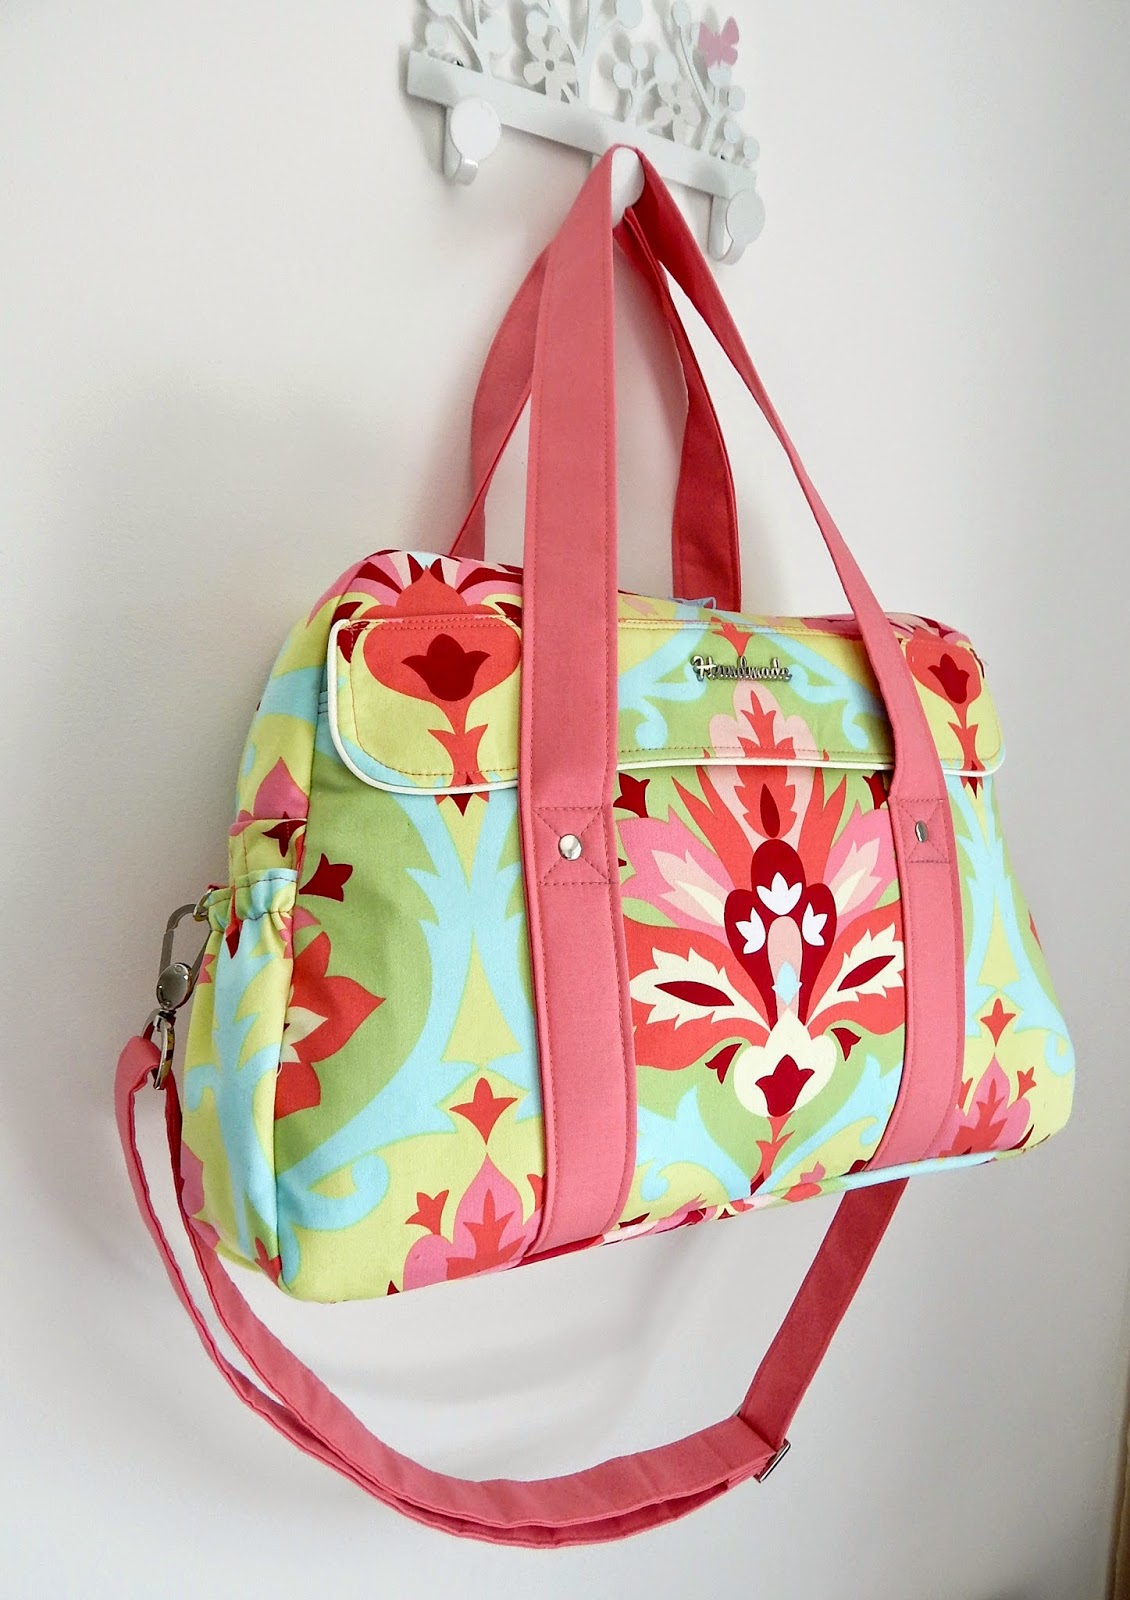 Bag Patterns : my next pattern would be a nappy bag/diaper bag/changing bag pattern ...